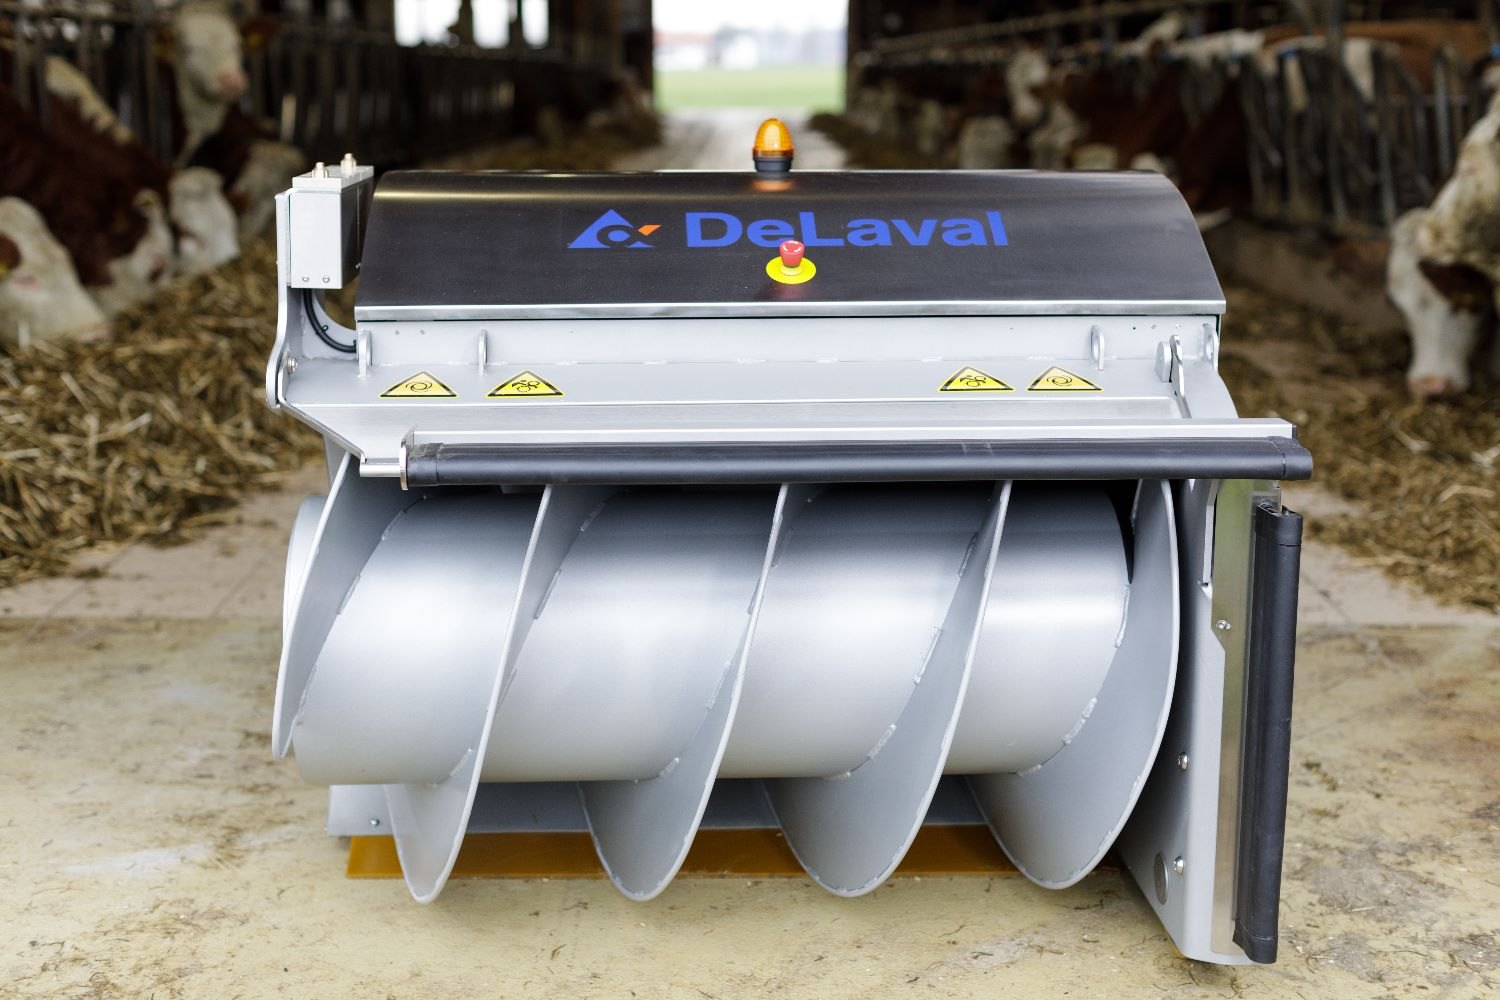 8._DeLaval_OptiDuo_frontal_view.jpg